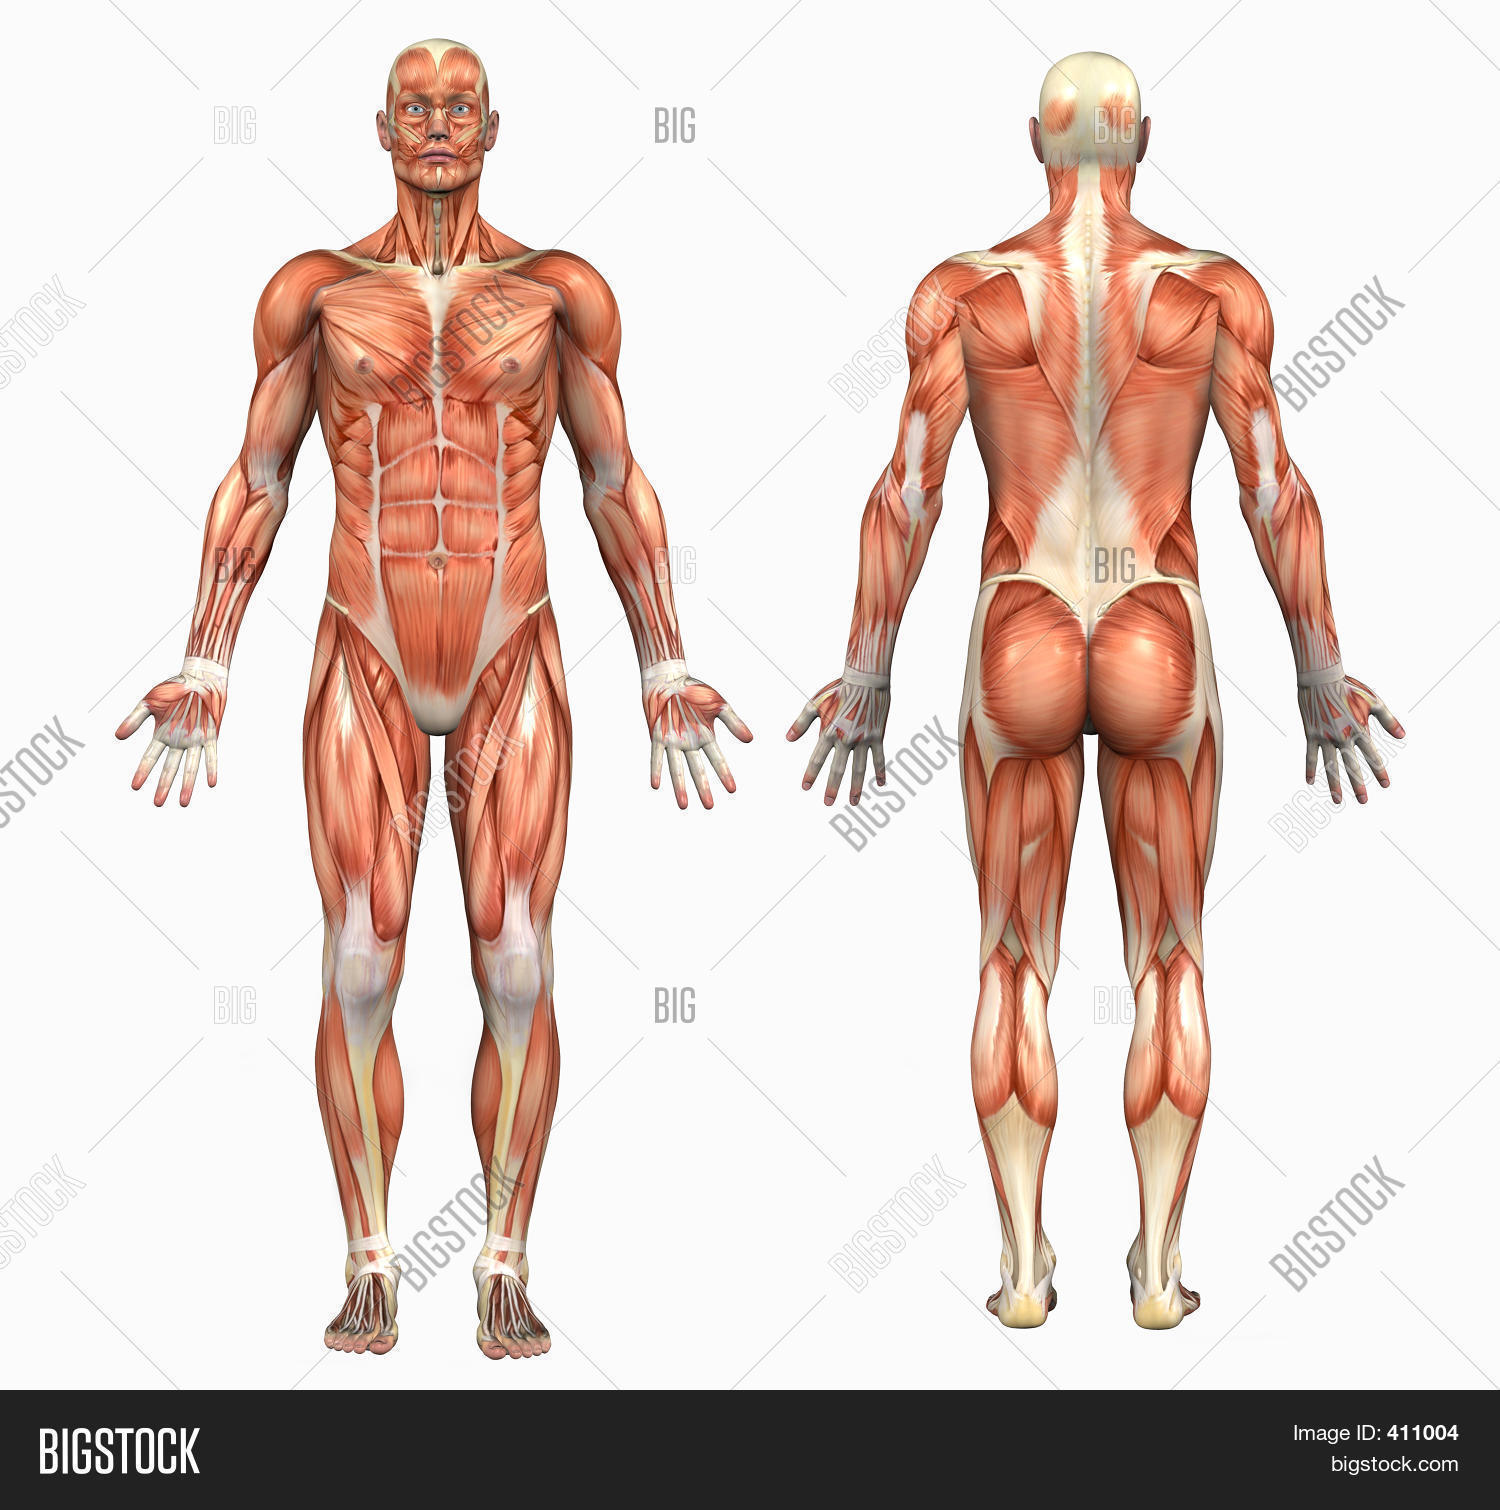 male muscle anatomy gallery - learn human anatomy image, Muscles